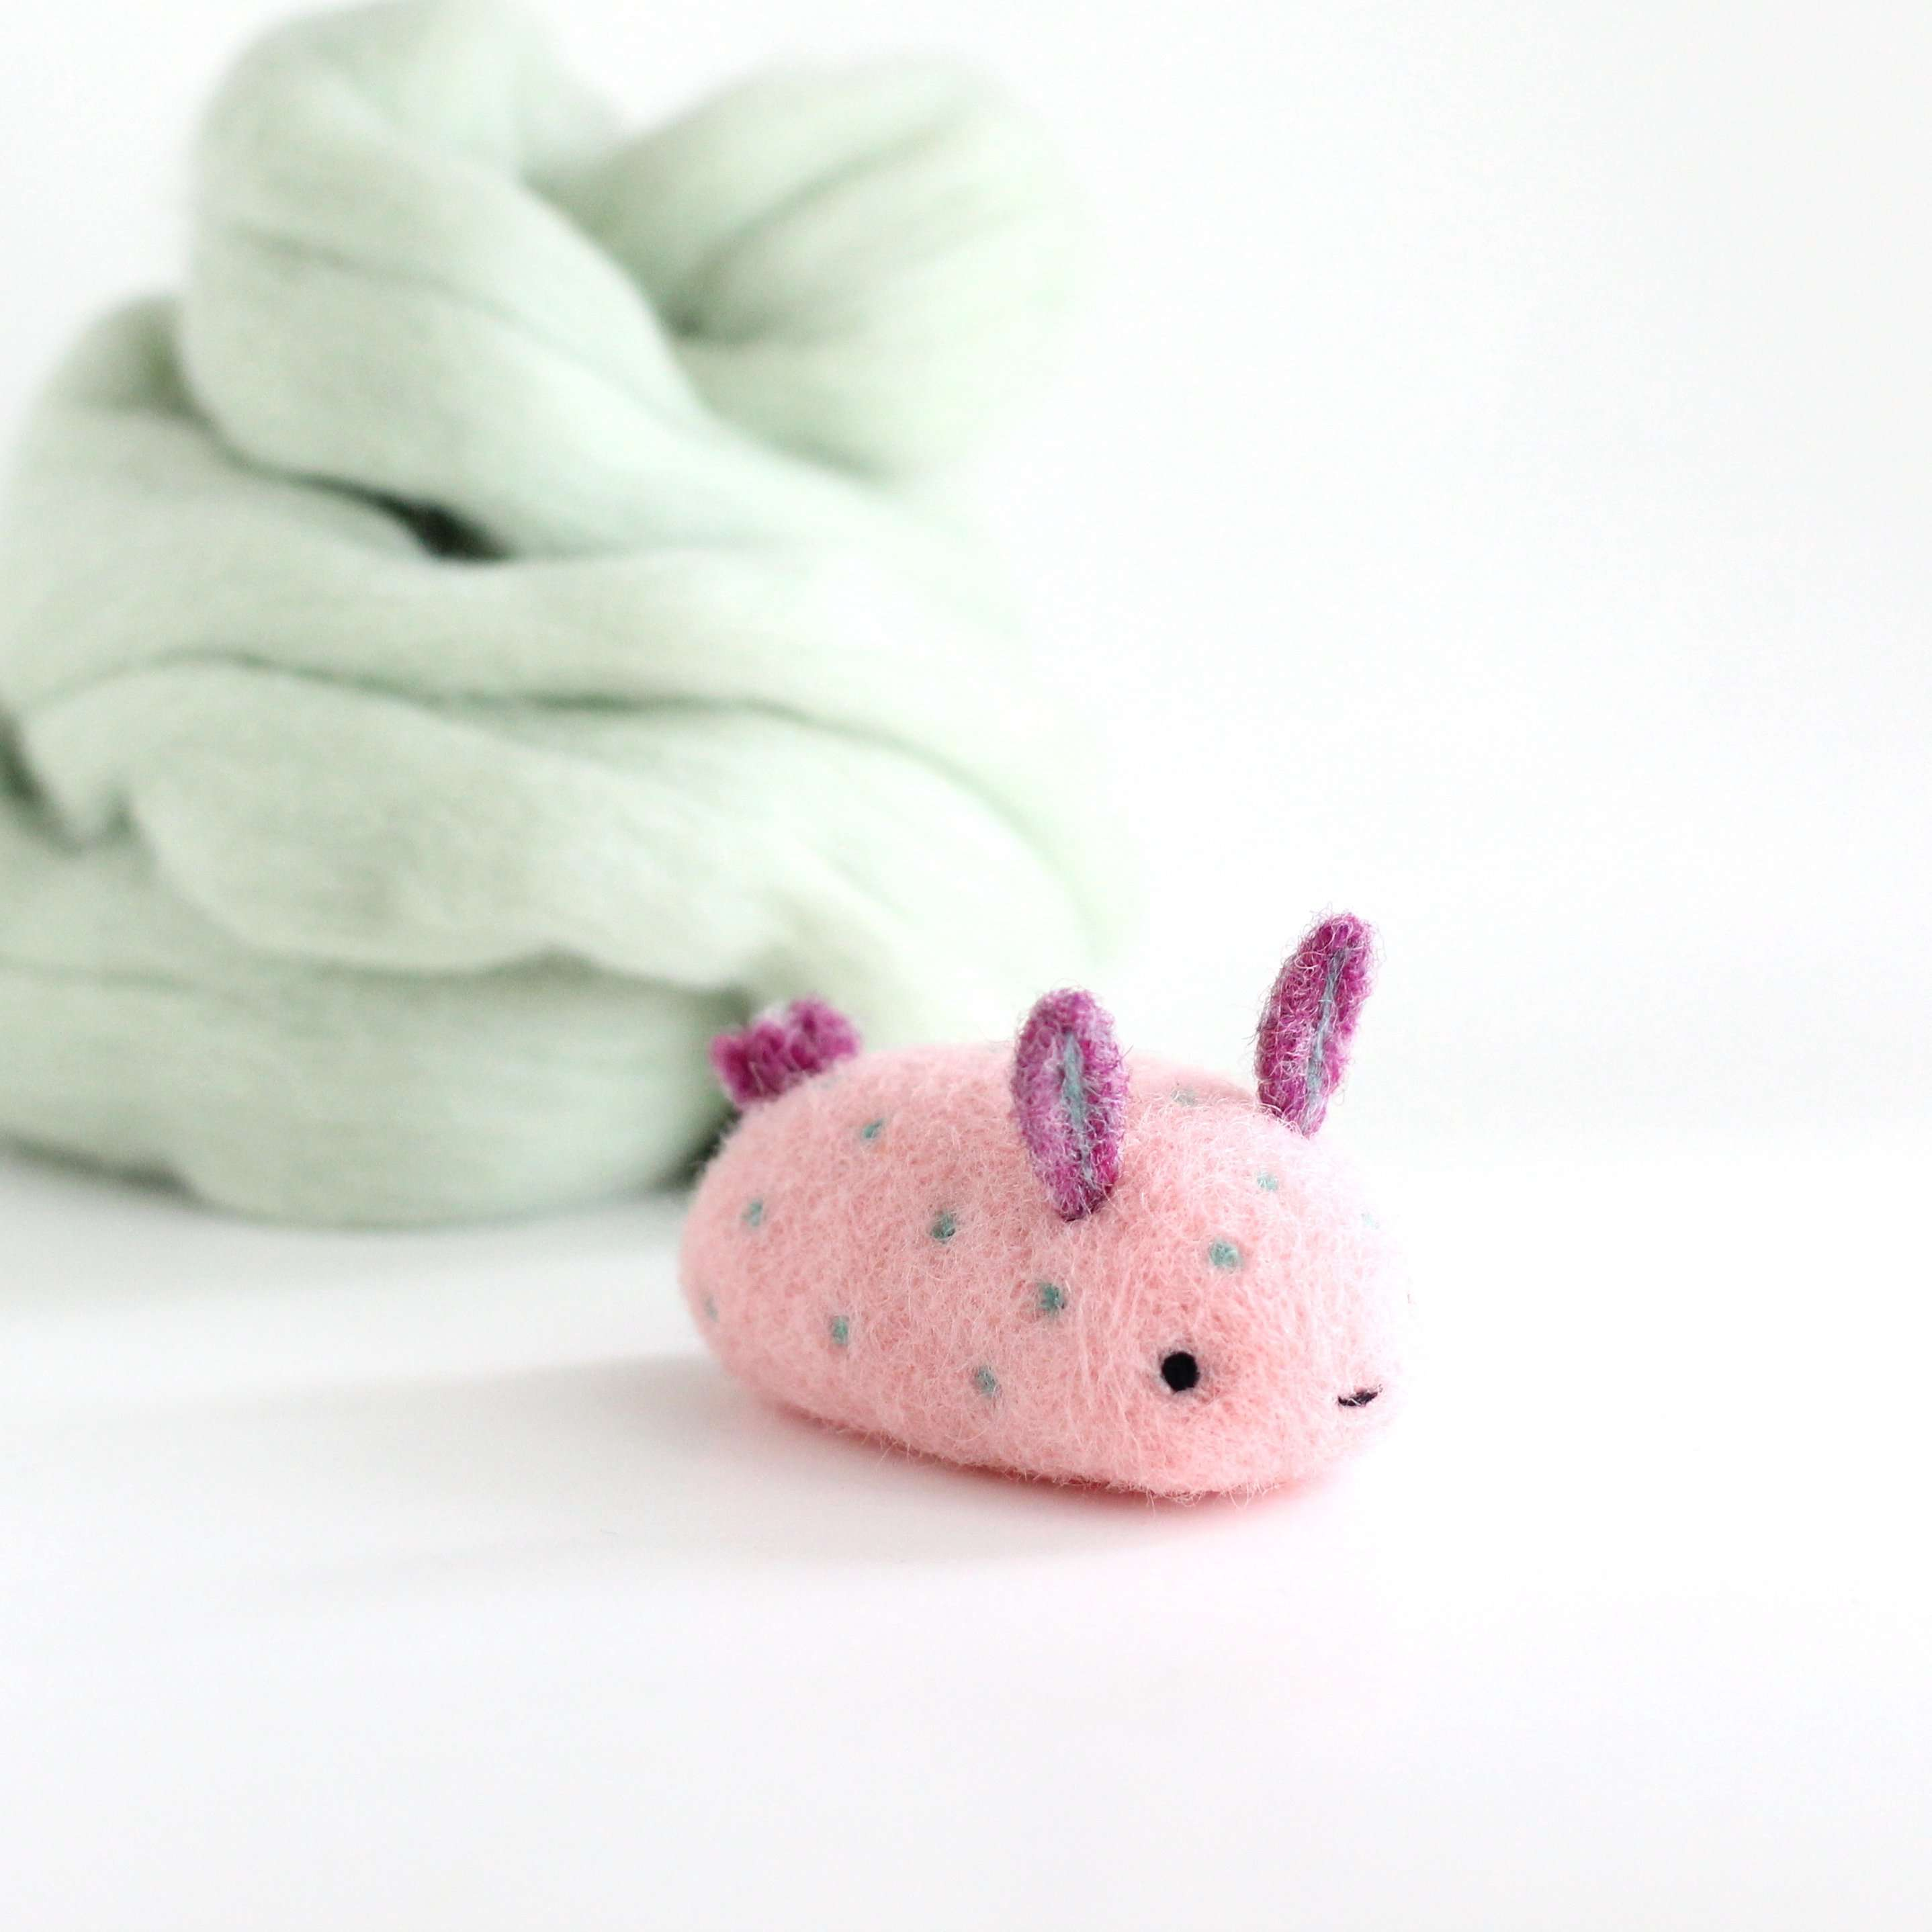 Needle Felted Sea Bunny (Bubblegum) by Wild Whimsy Woolies